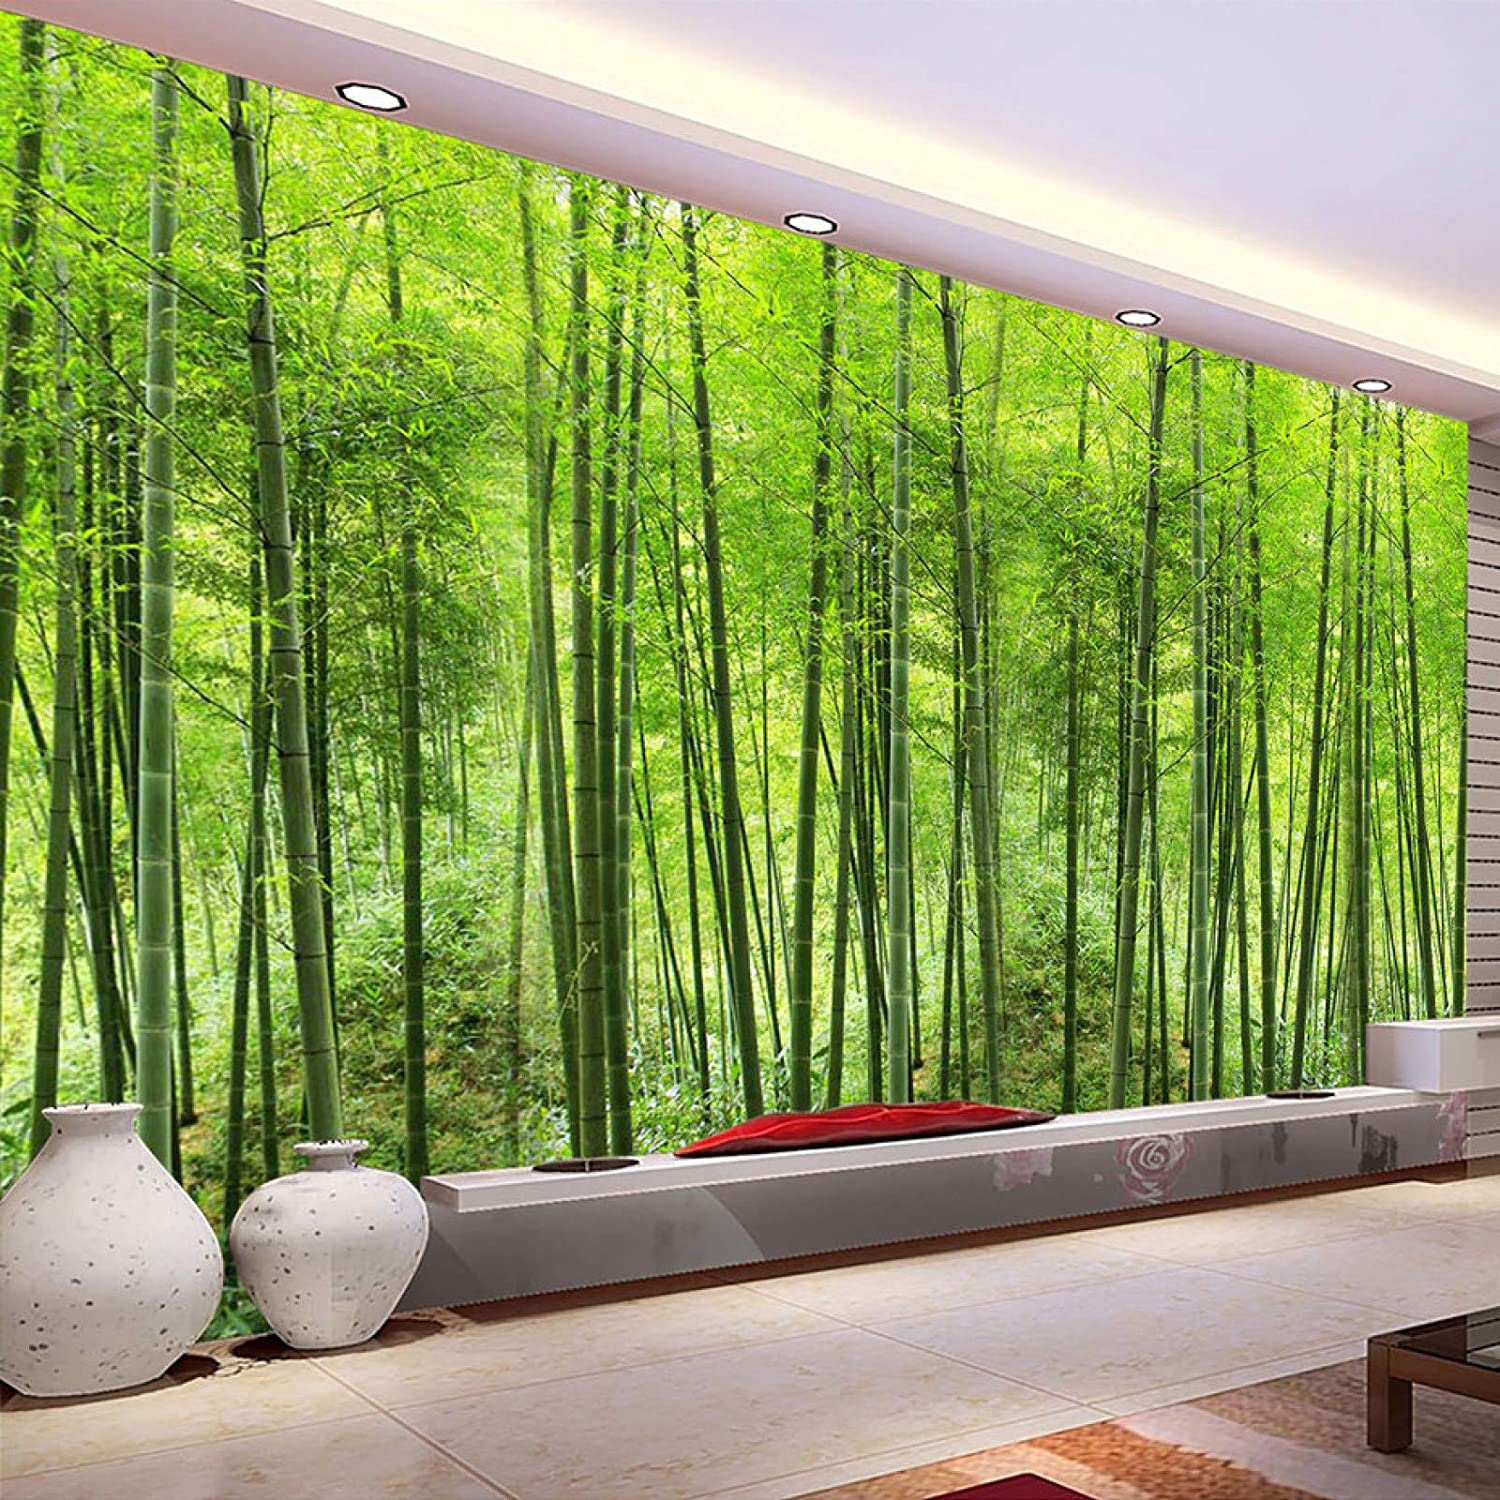 HUIJIE Photo Wallpaper,Custom 3D Large Mural Nature Landscape Green Bamboo Forest Photo Mural Wallpaper for Wall Living Room Tv Sofa Background Wall Decoration,250Cm(H)×360Cm(W)